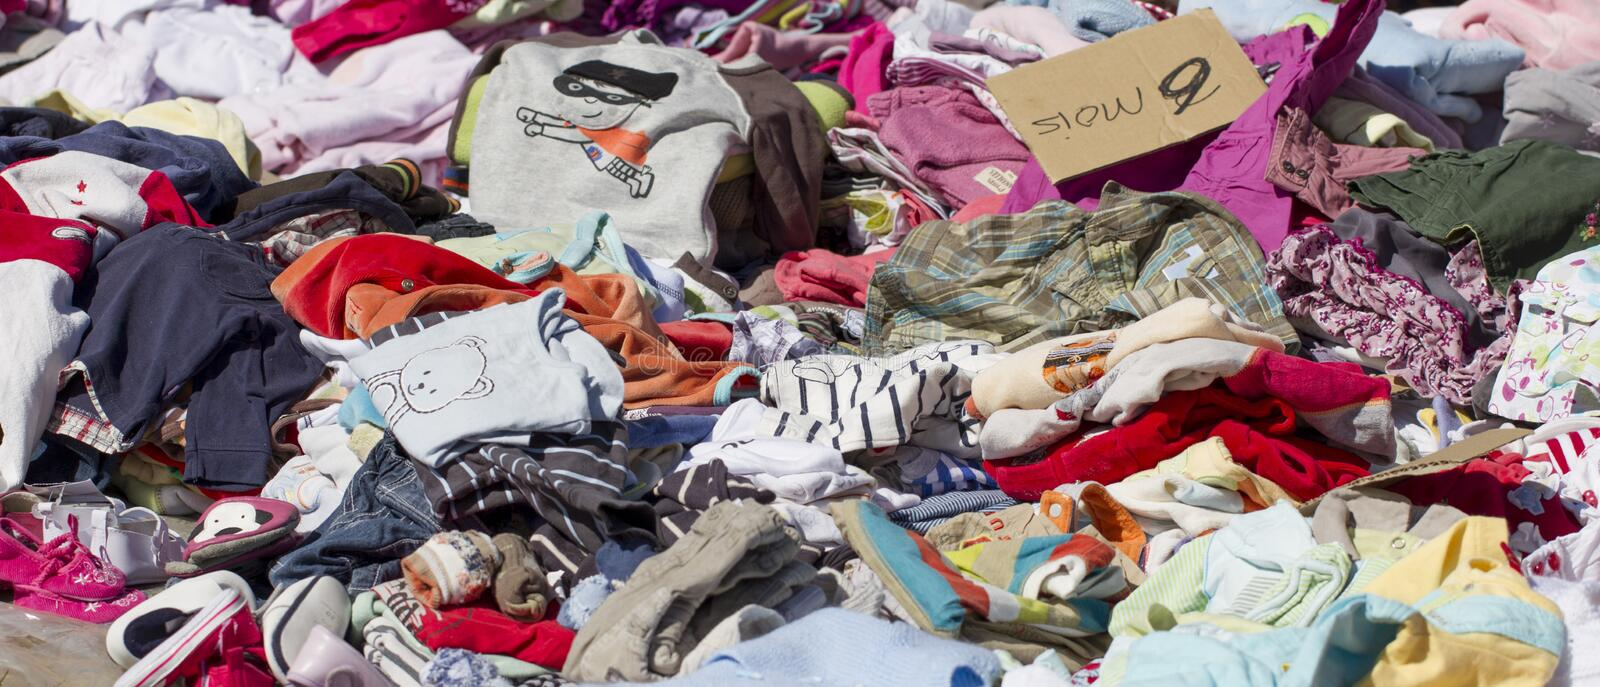 Tons of baby clothes at flea market royalty free stock photos